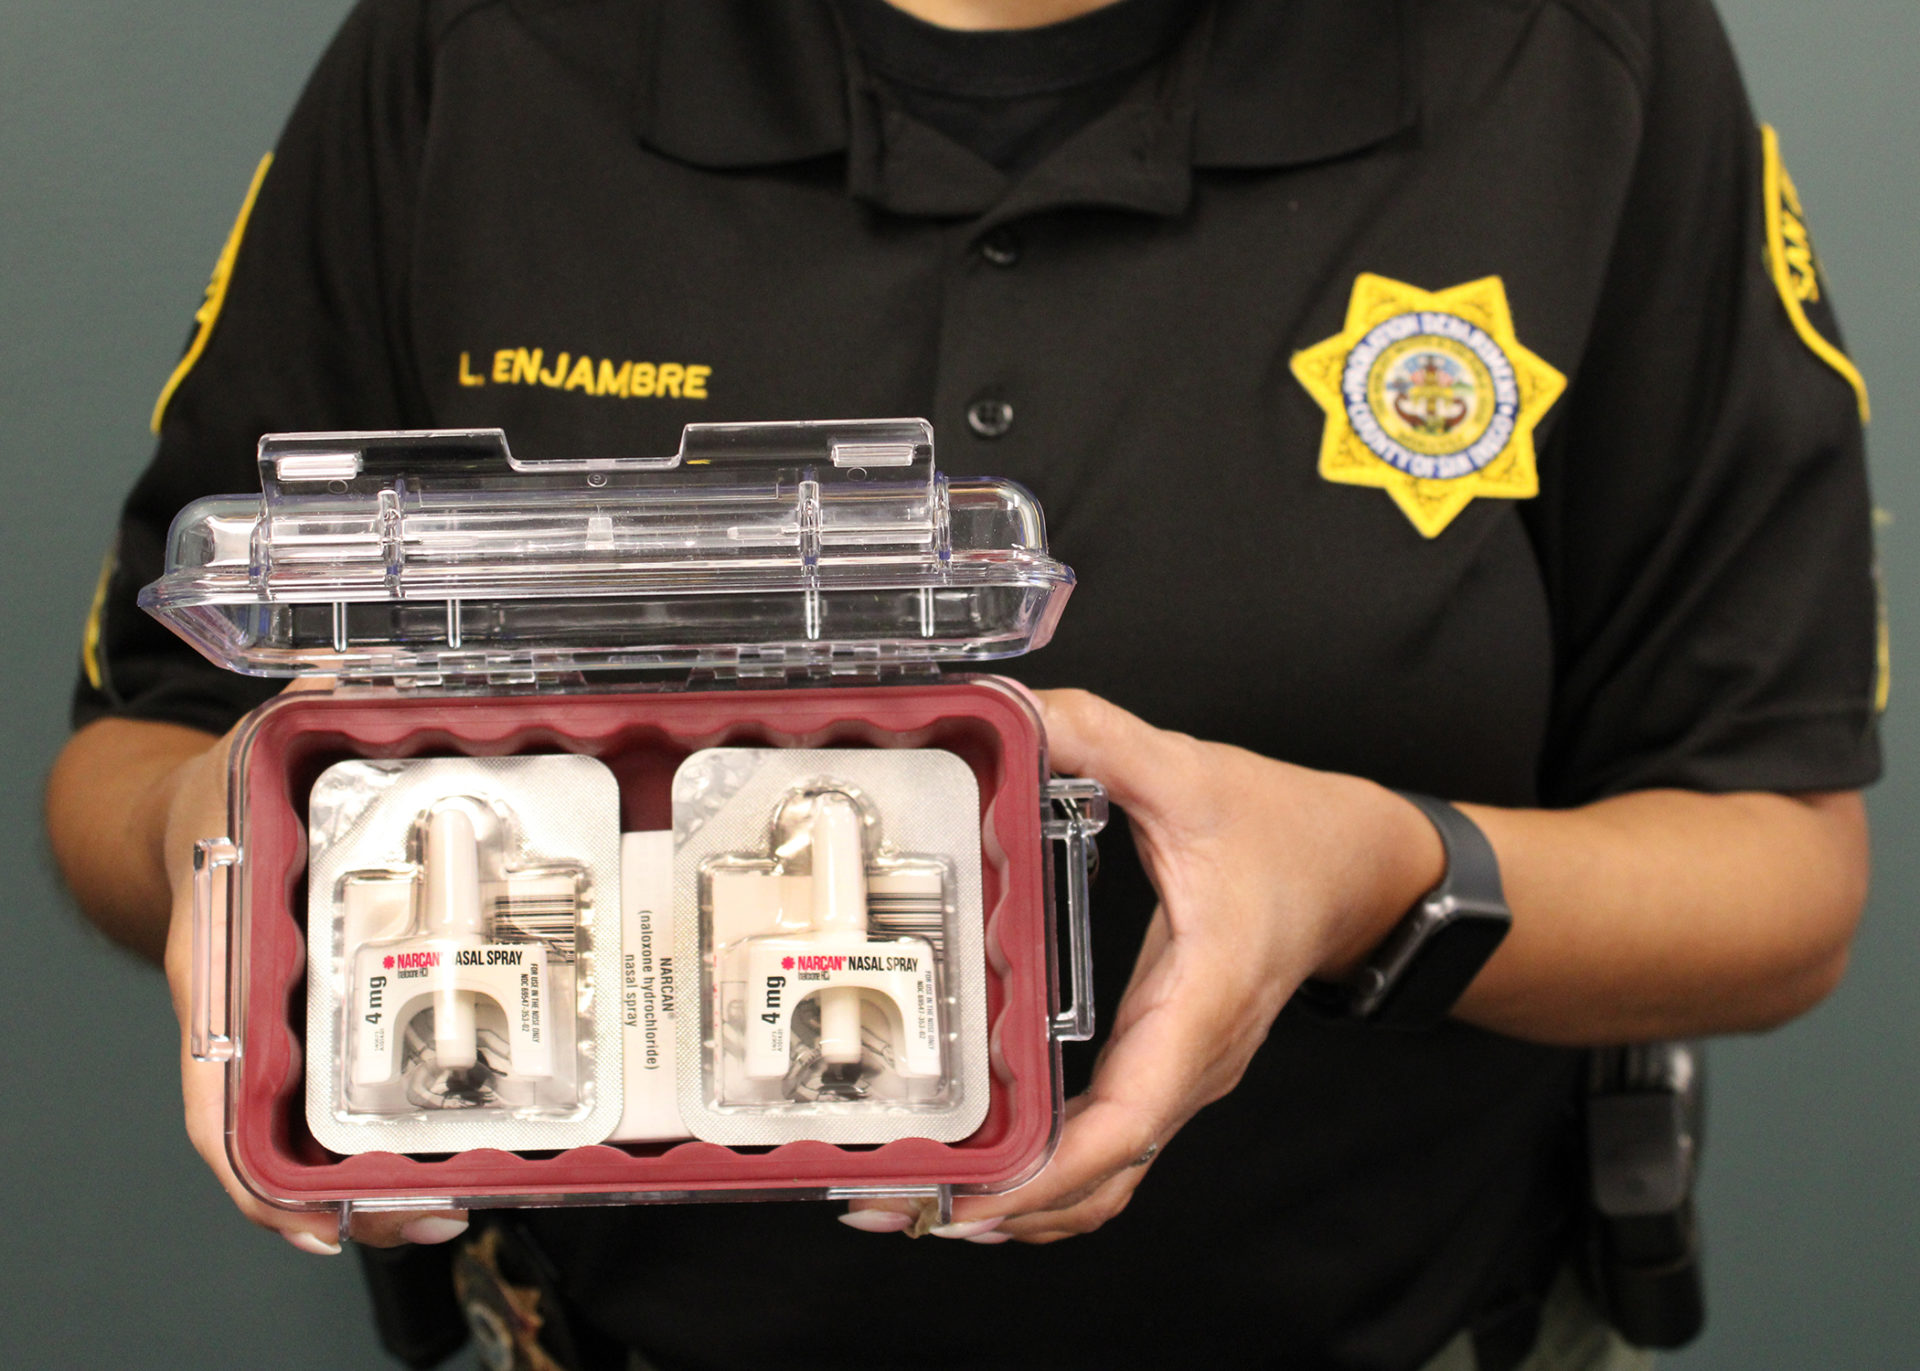 probation officer holding the naloxone they carry.